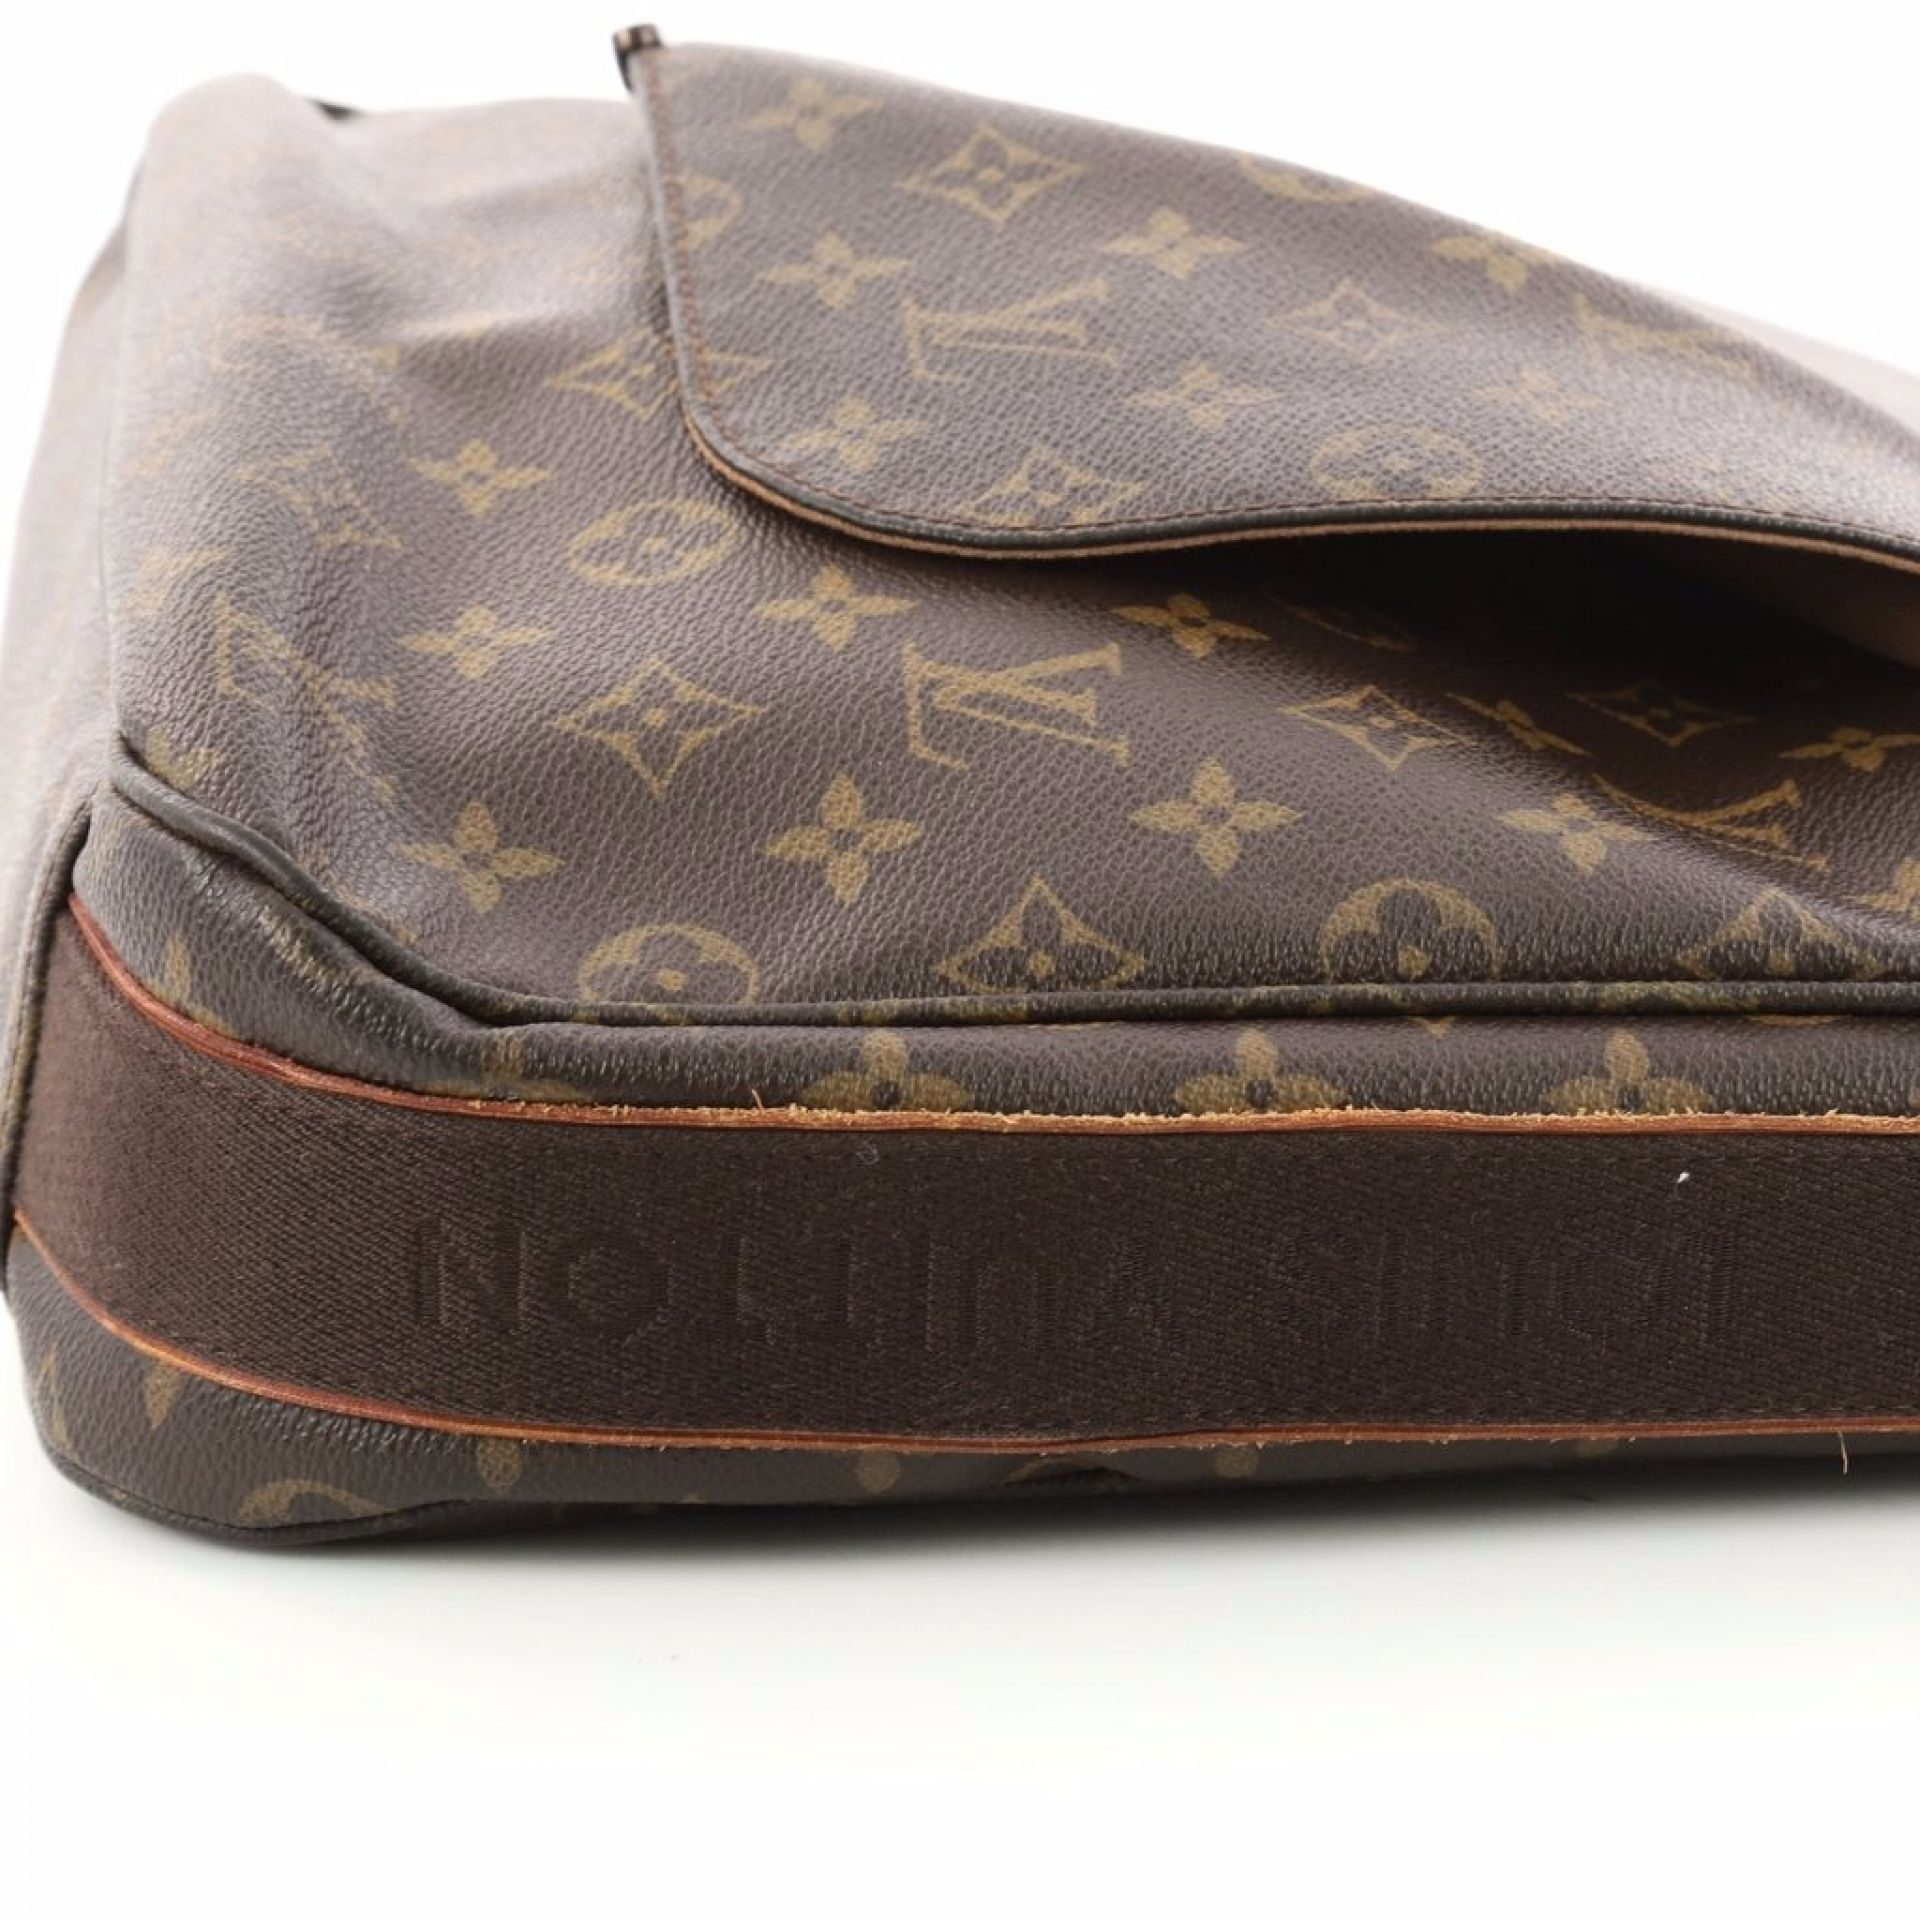 Louis Vuitton Beaubourg Messenger Bag Monogram Canvas GM